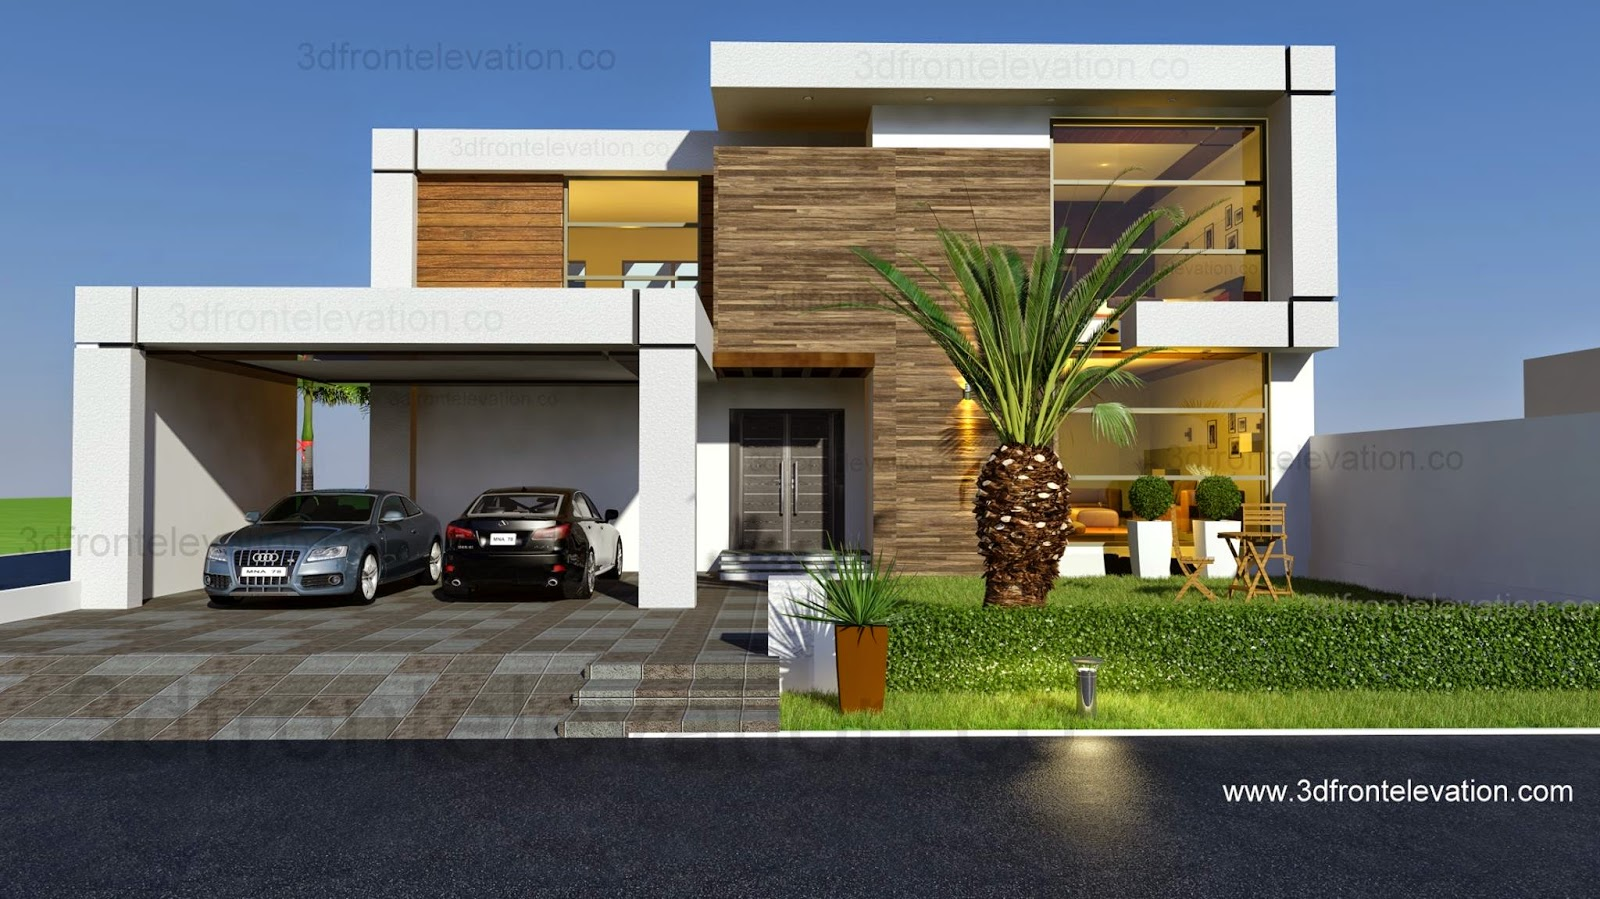 Home Design 2016 house imposing house design on house 35 beautiful 2016 house designs charming house design Beautiful Contemporary House Design 2016